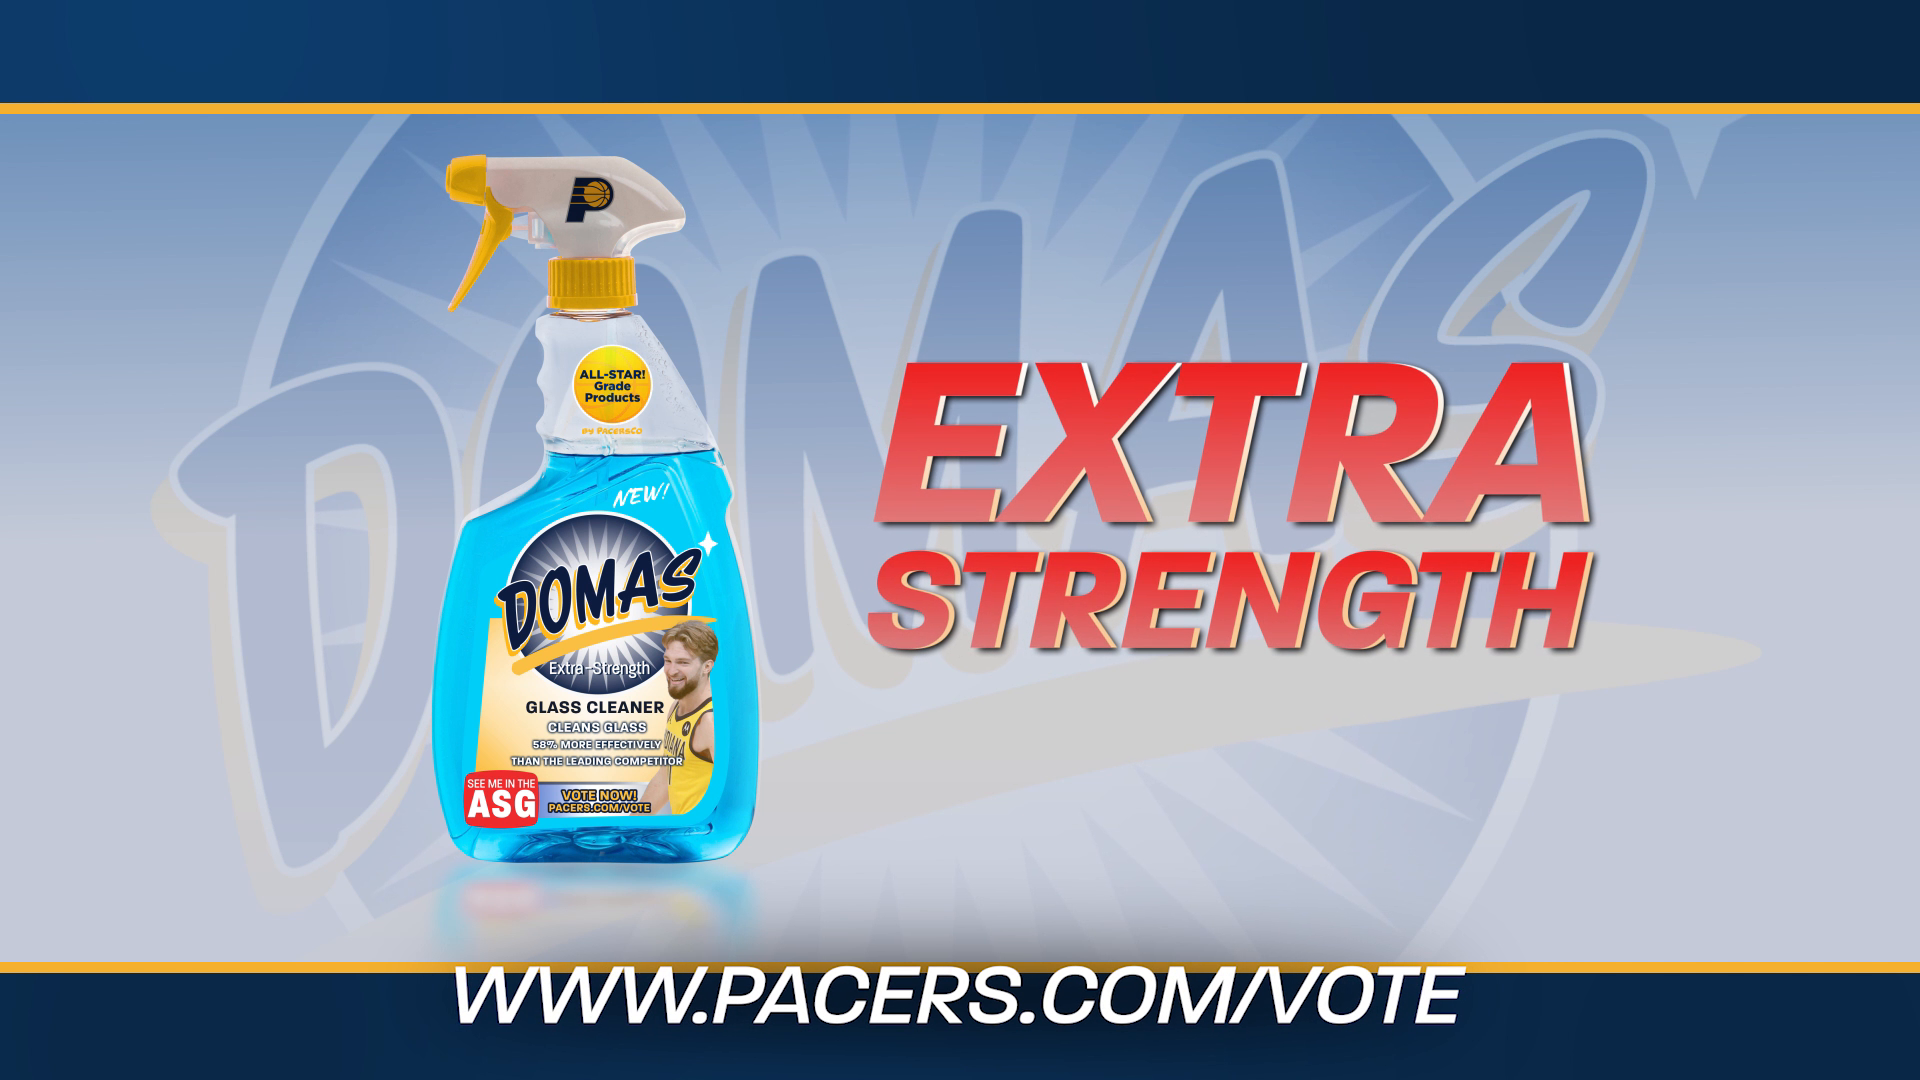 Domas Extra-Strength Glass Cleaner Infomercial